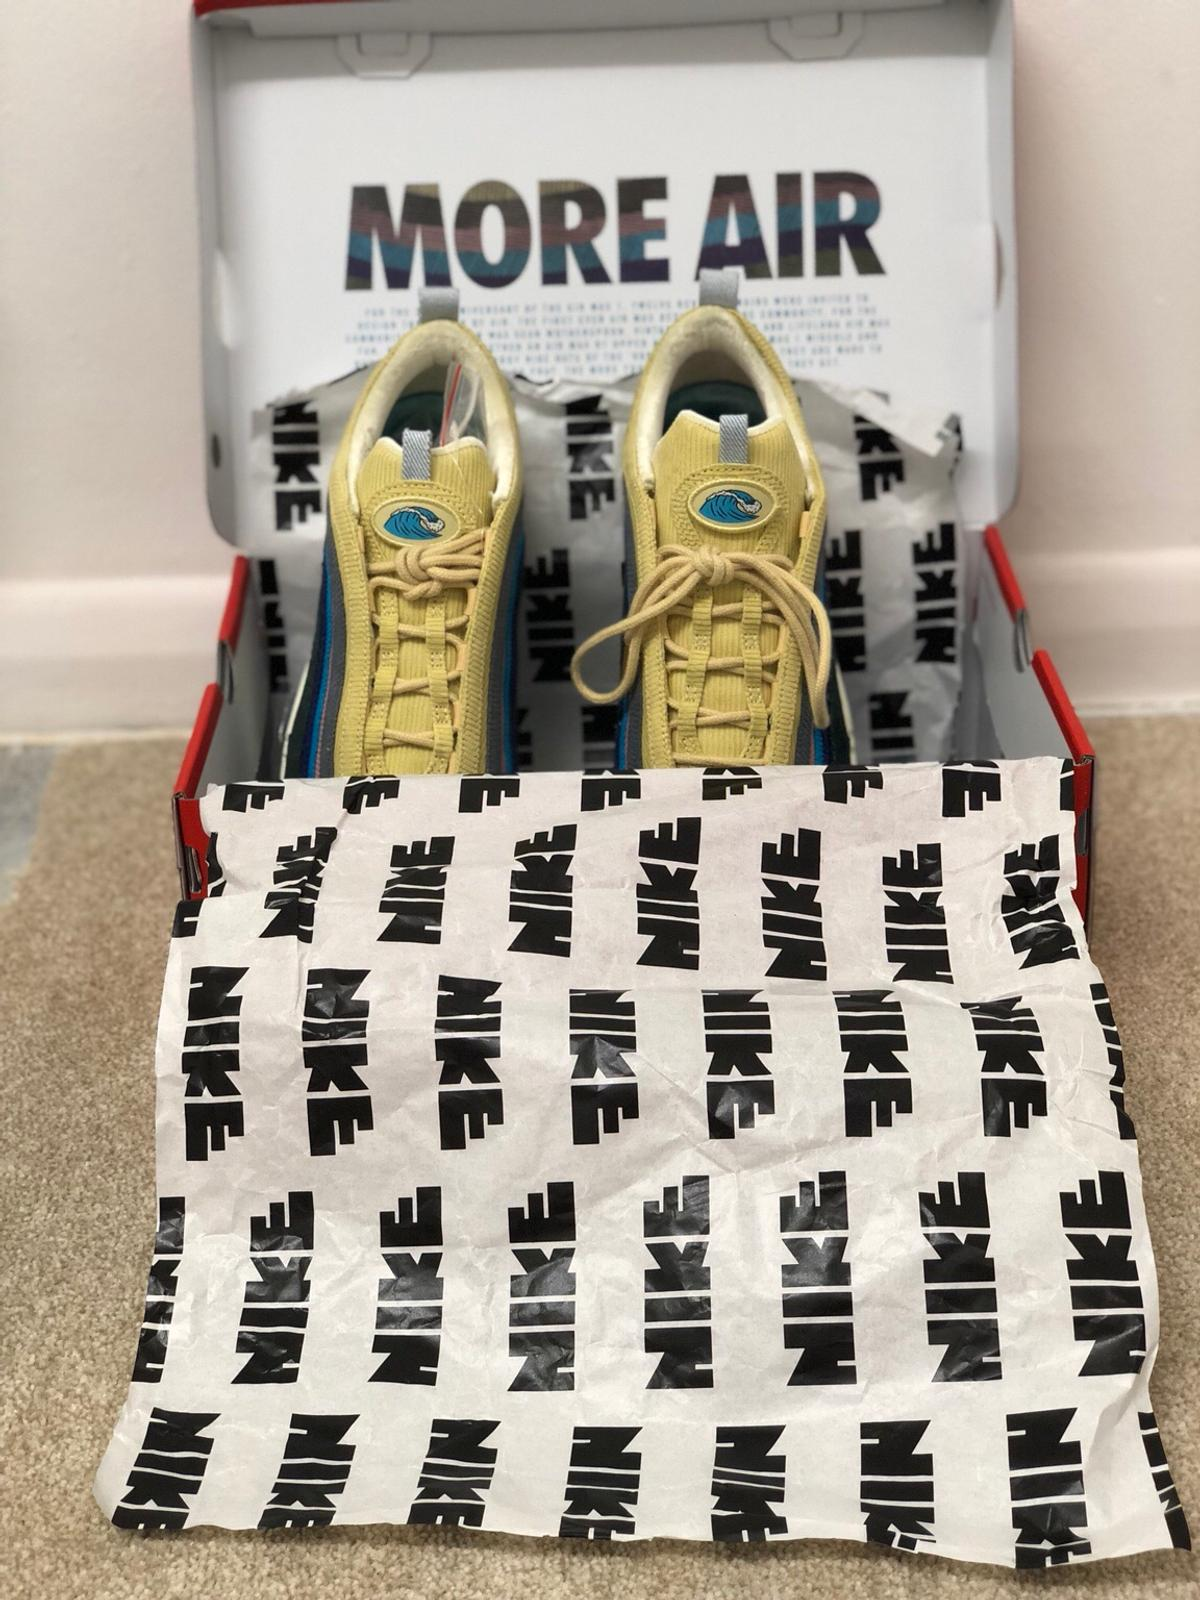 Nike Air Max 97/1 Sean Wotherspoon/ UK 8 in TW12 Thames for